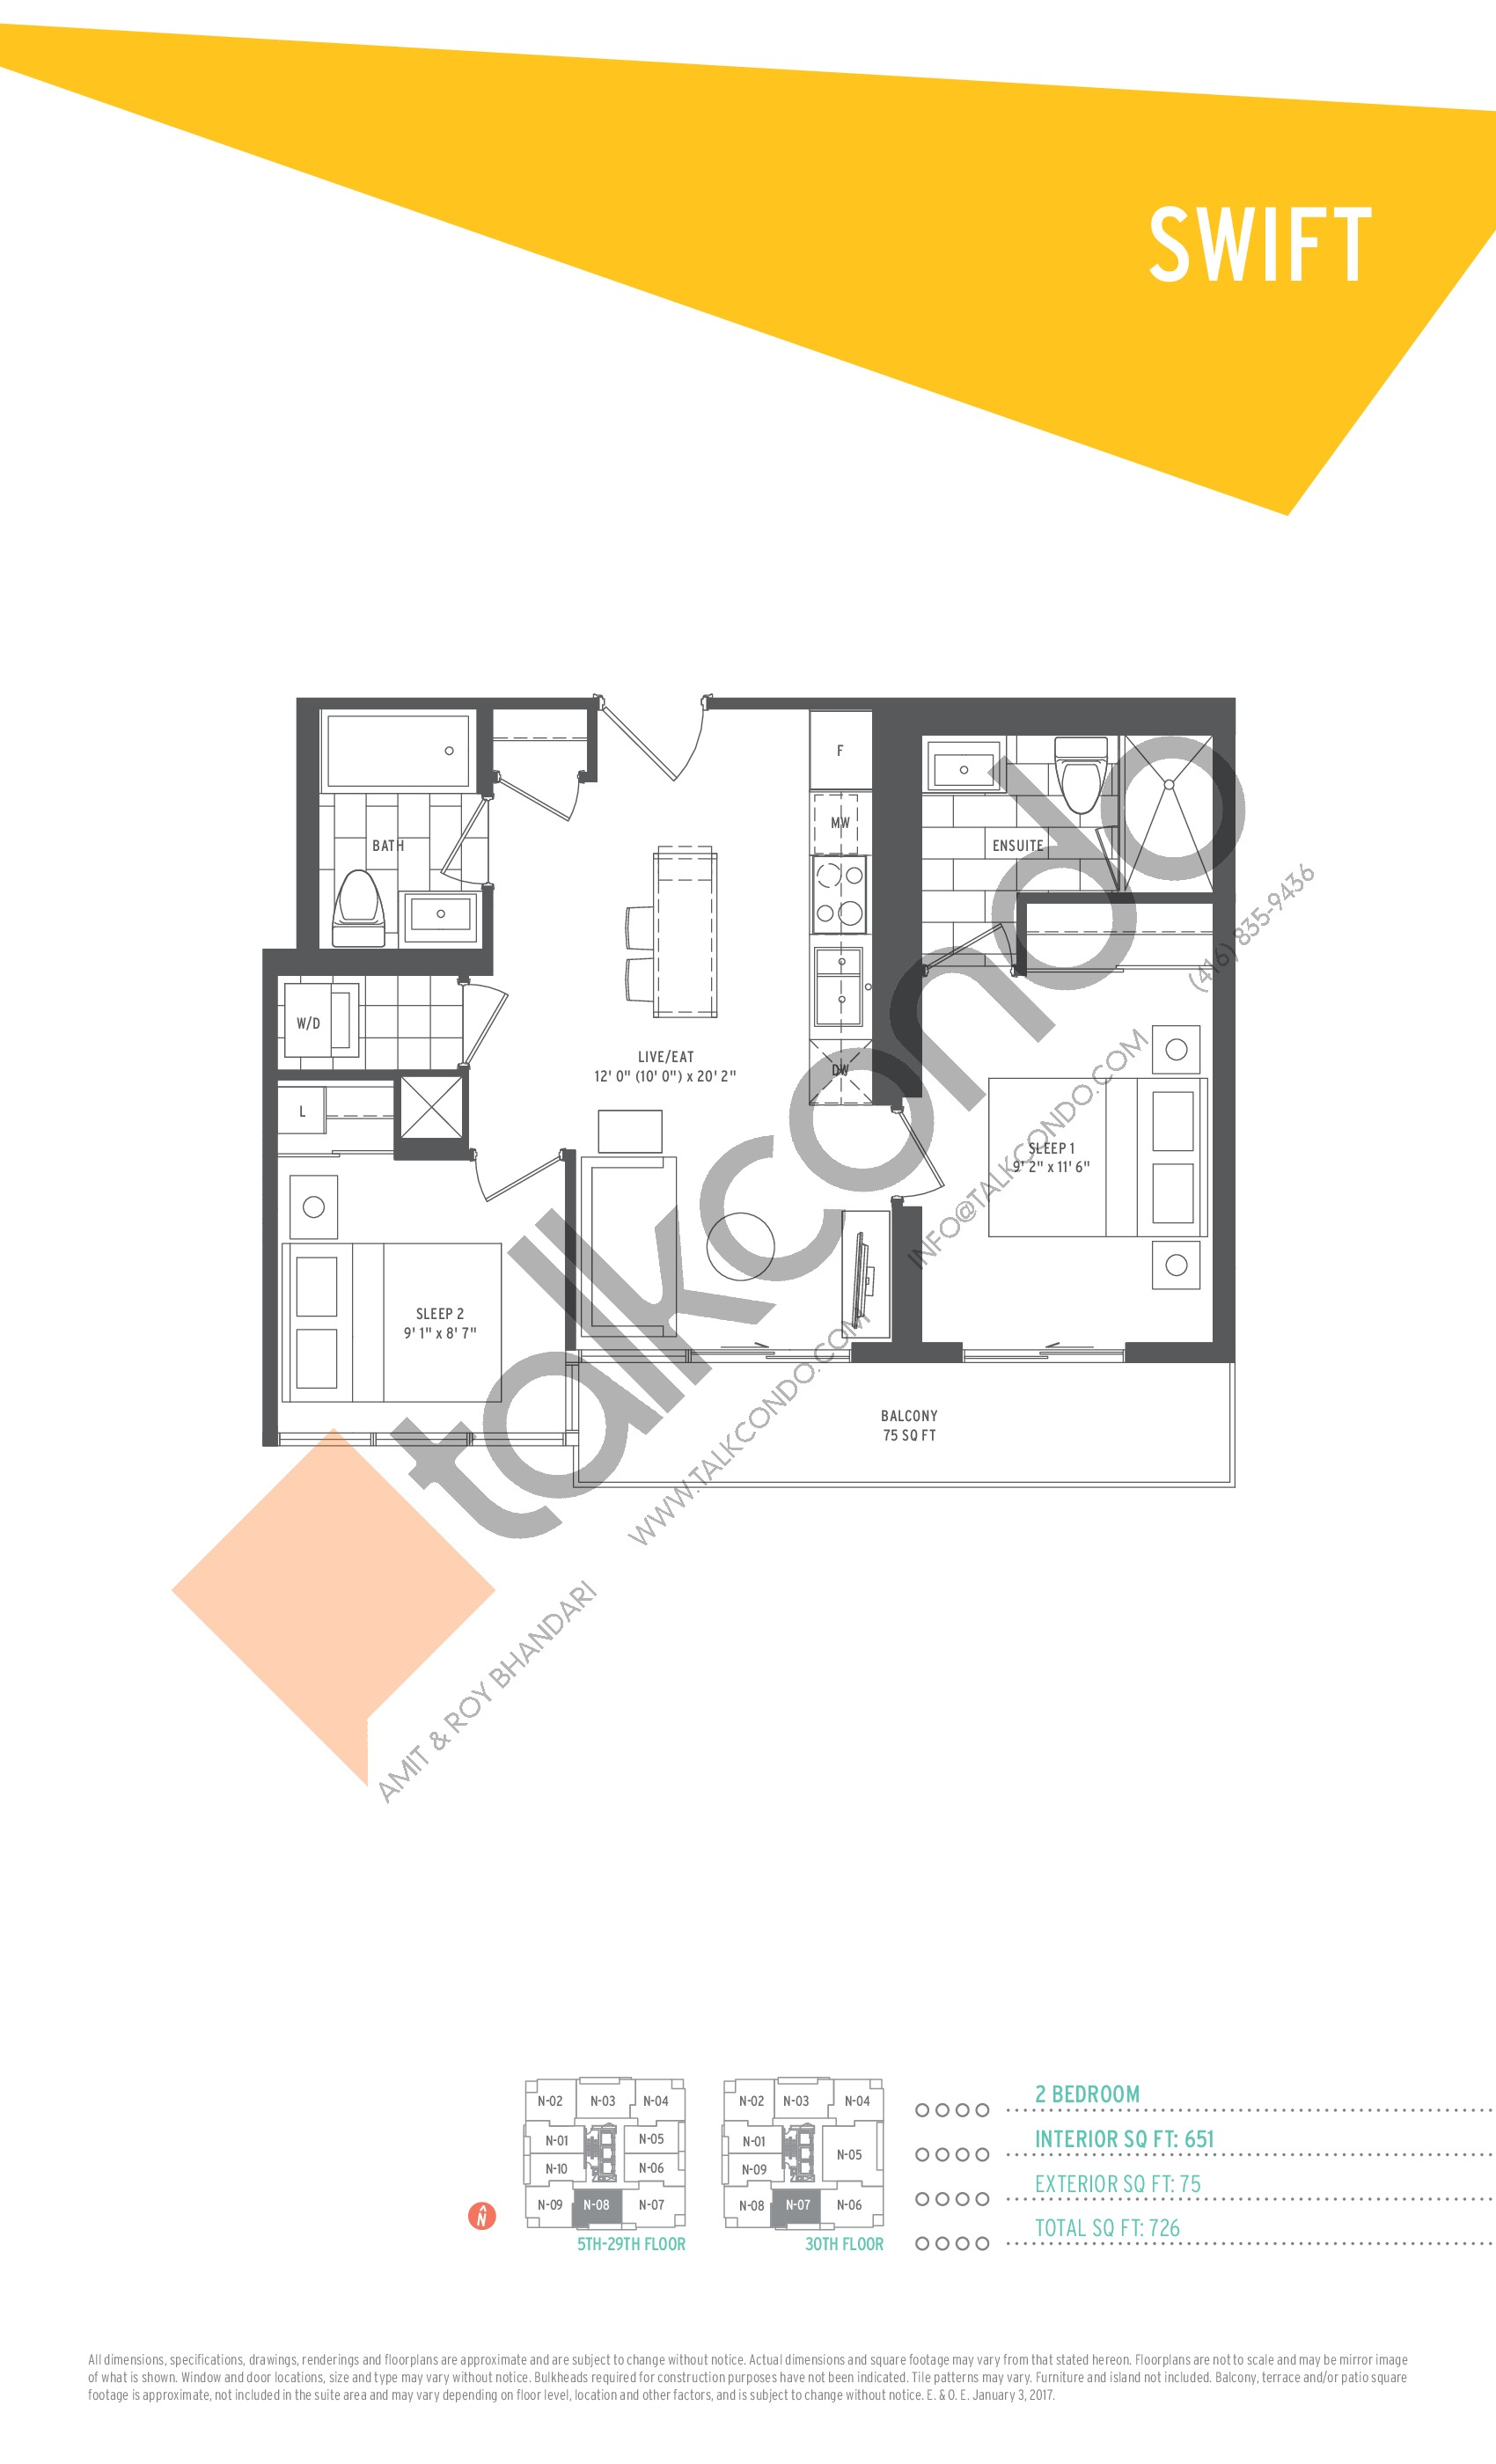 Swift Floor Plan at SuperSonic Condos - 651 sq.ft